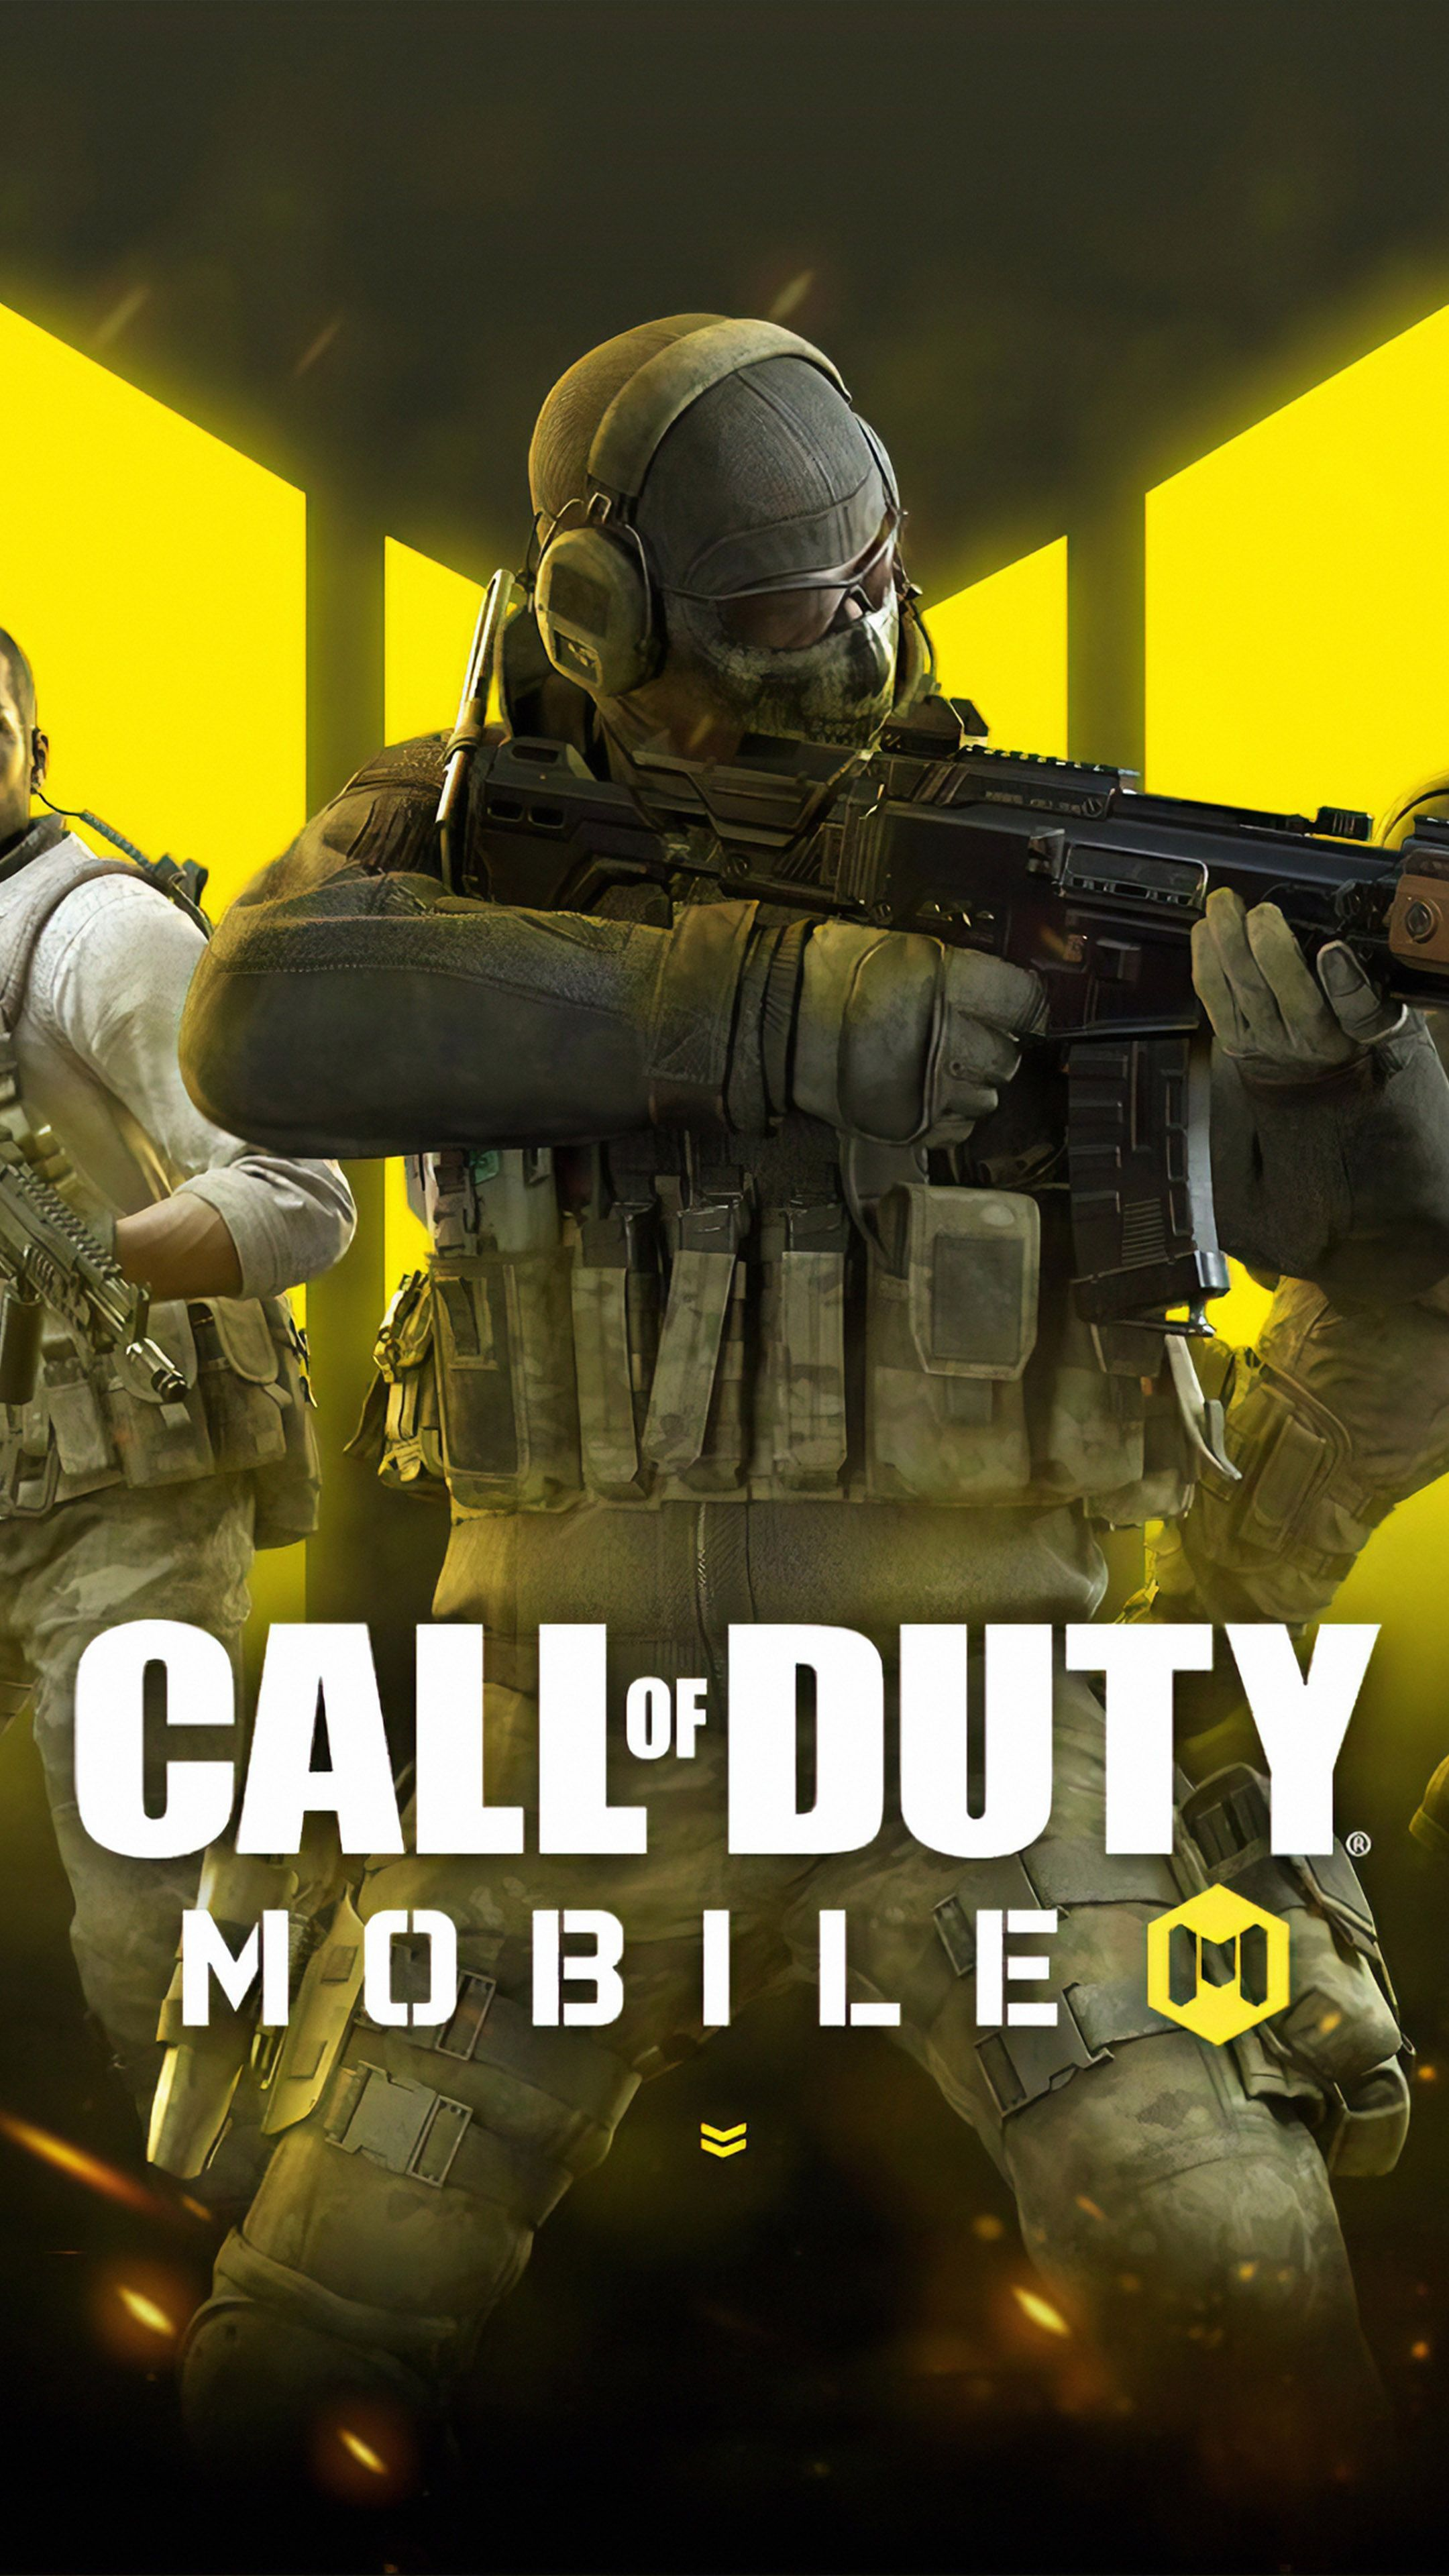 Call of Duty Mobile Logo Wallpapers - Top Free Call of ...